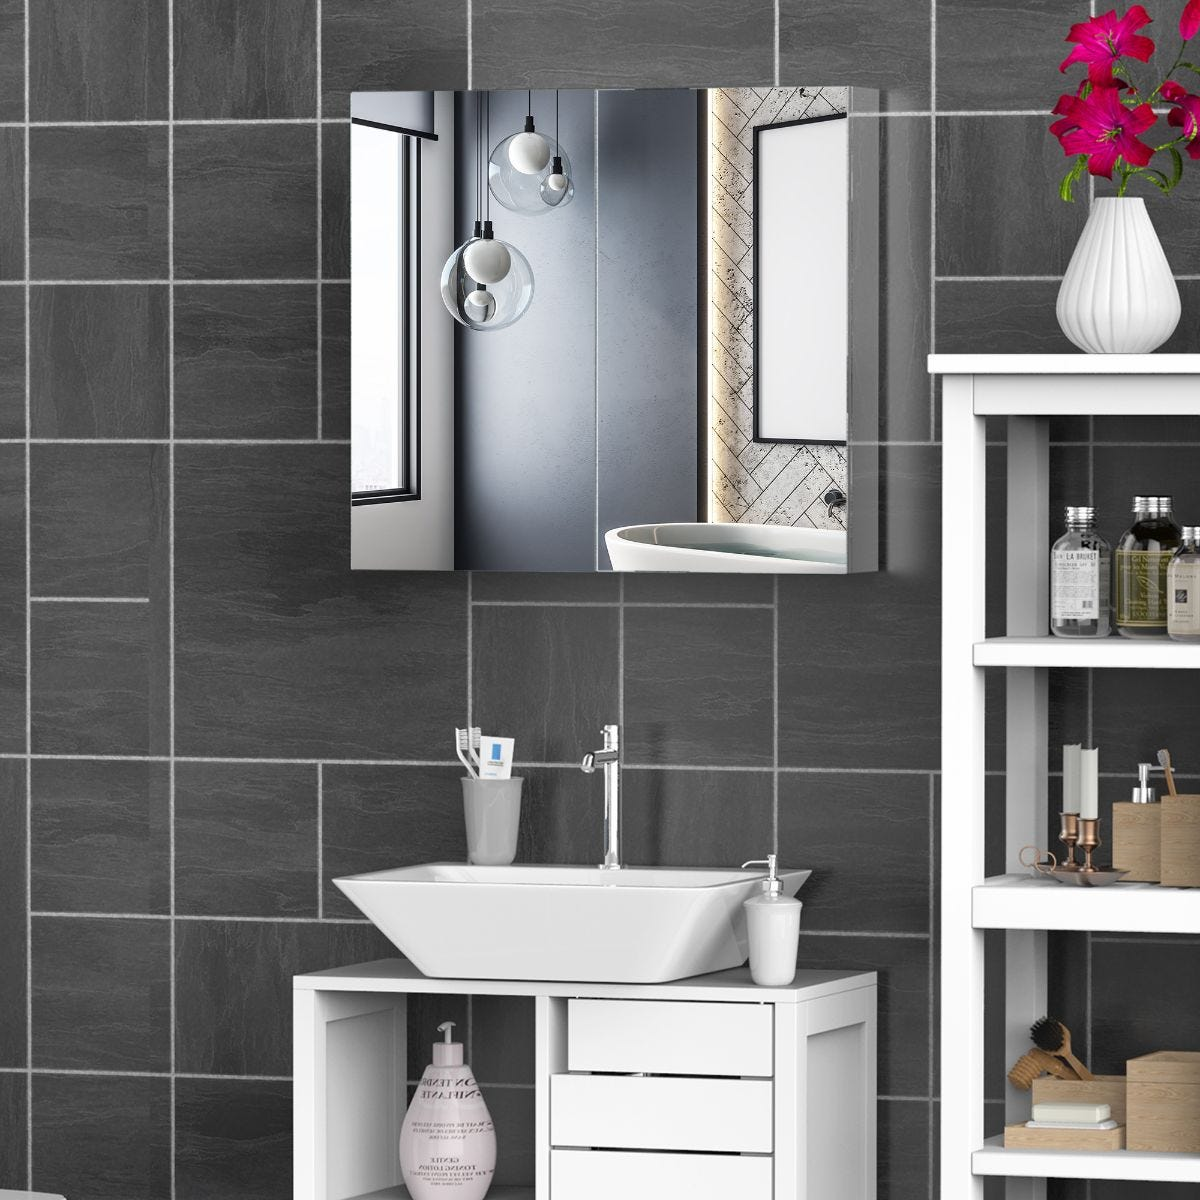 Wall Mounted Stainless Steel Bathroom Cabinet With Double Mirror Door